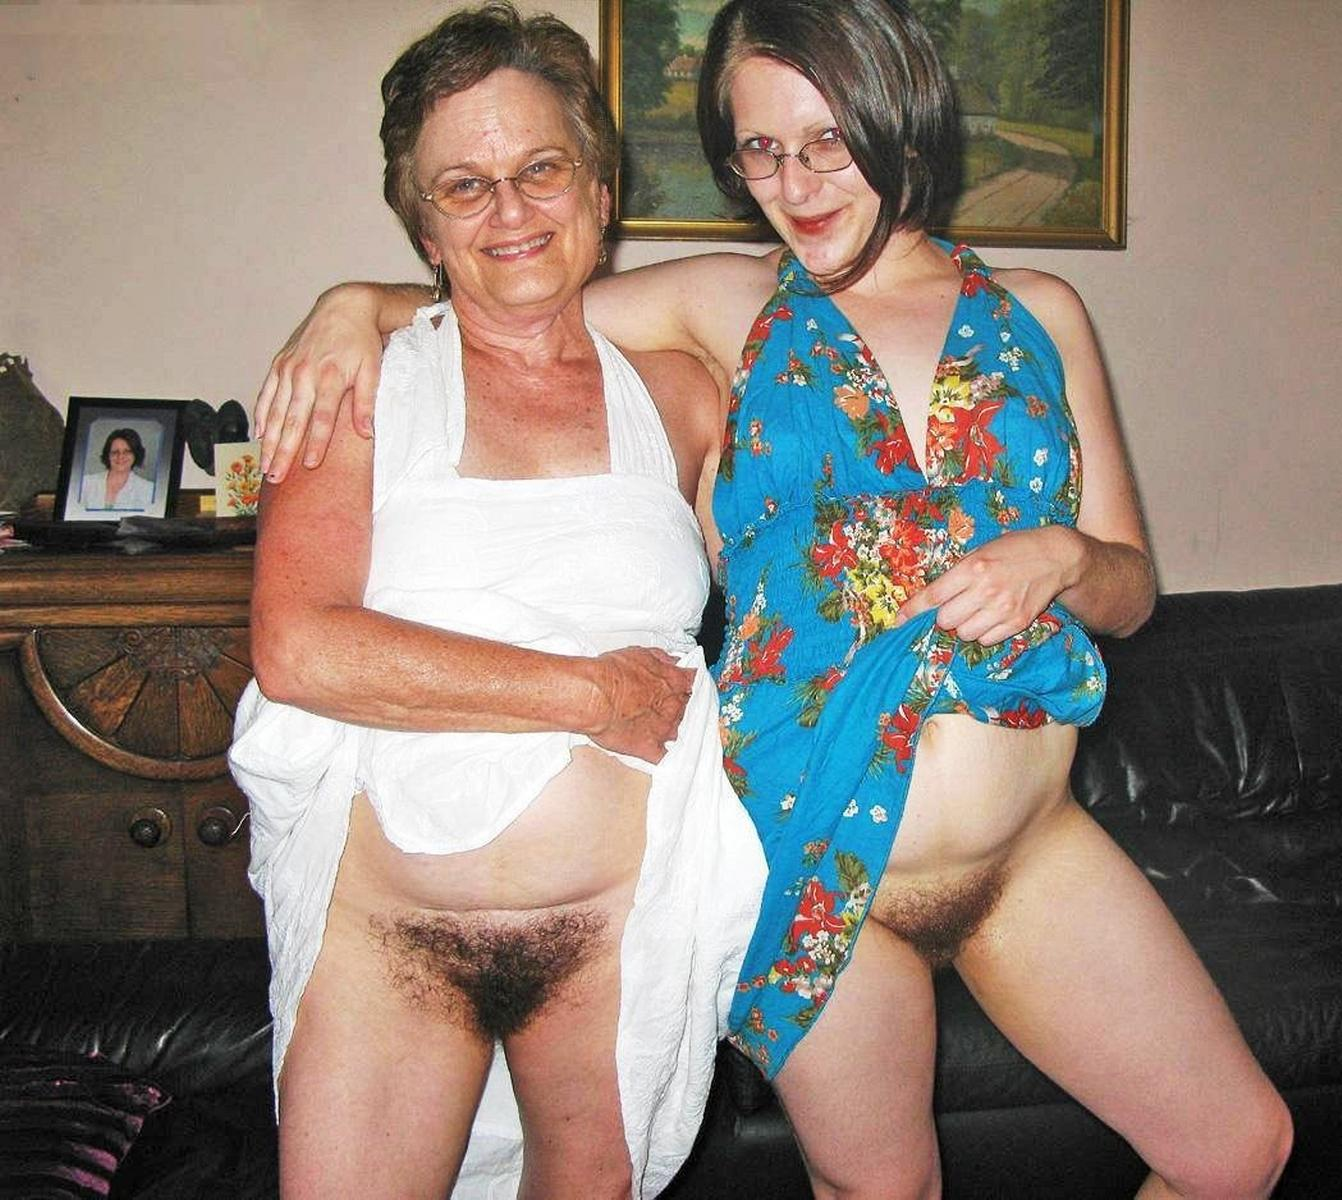 naked family photos mom